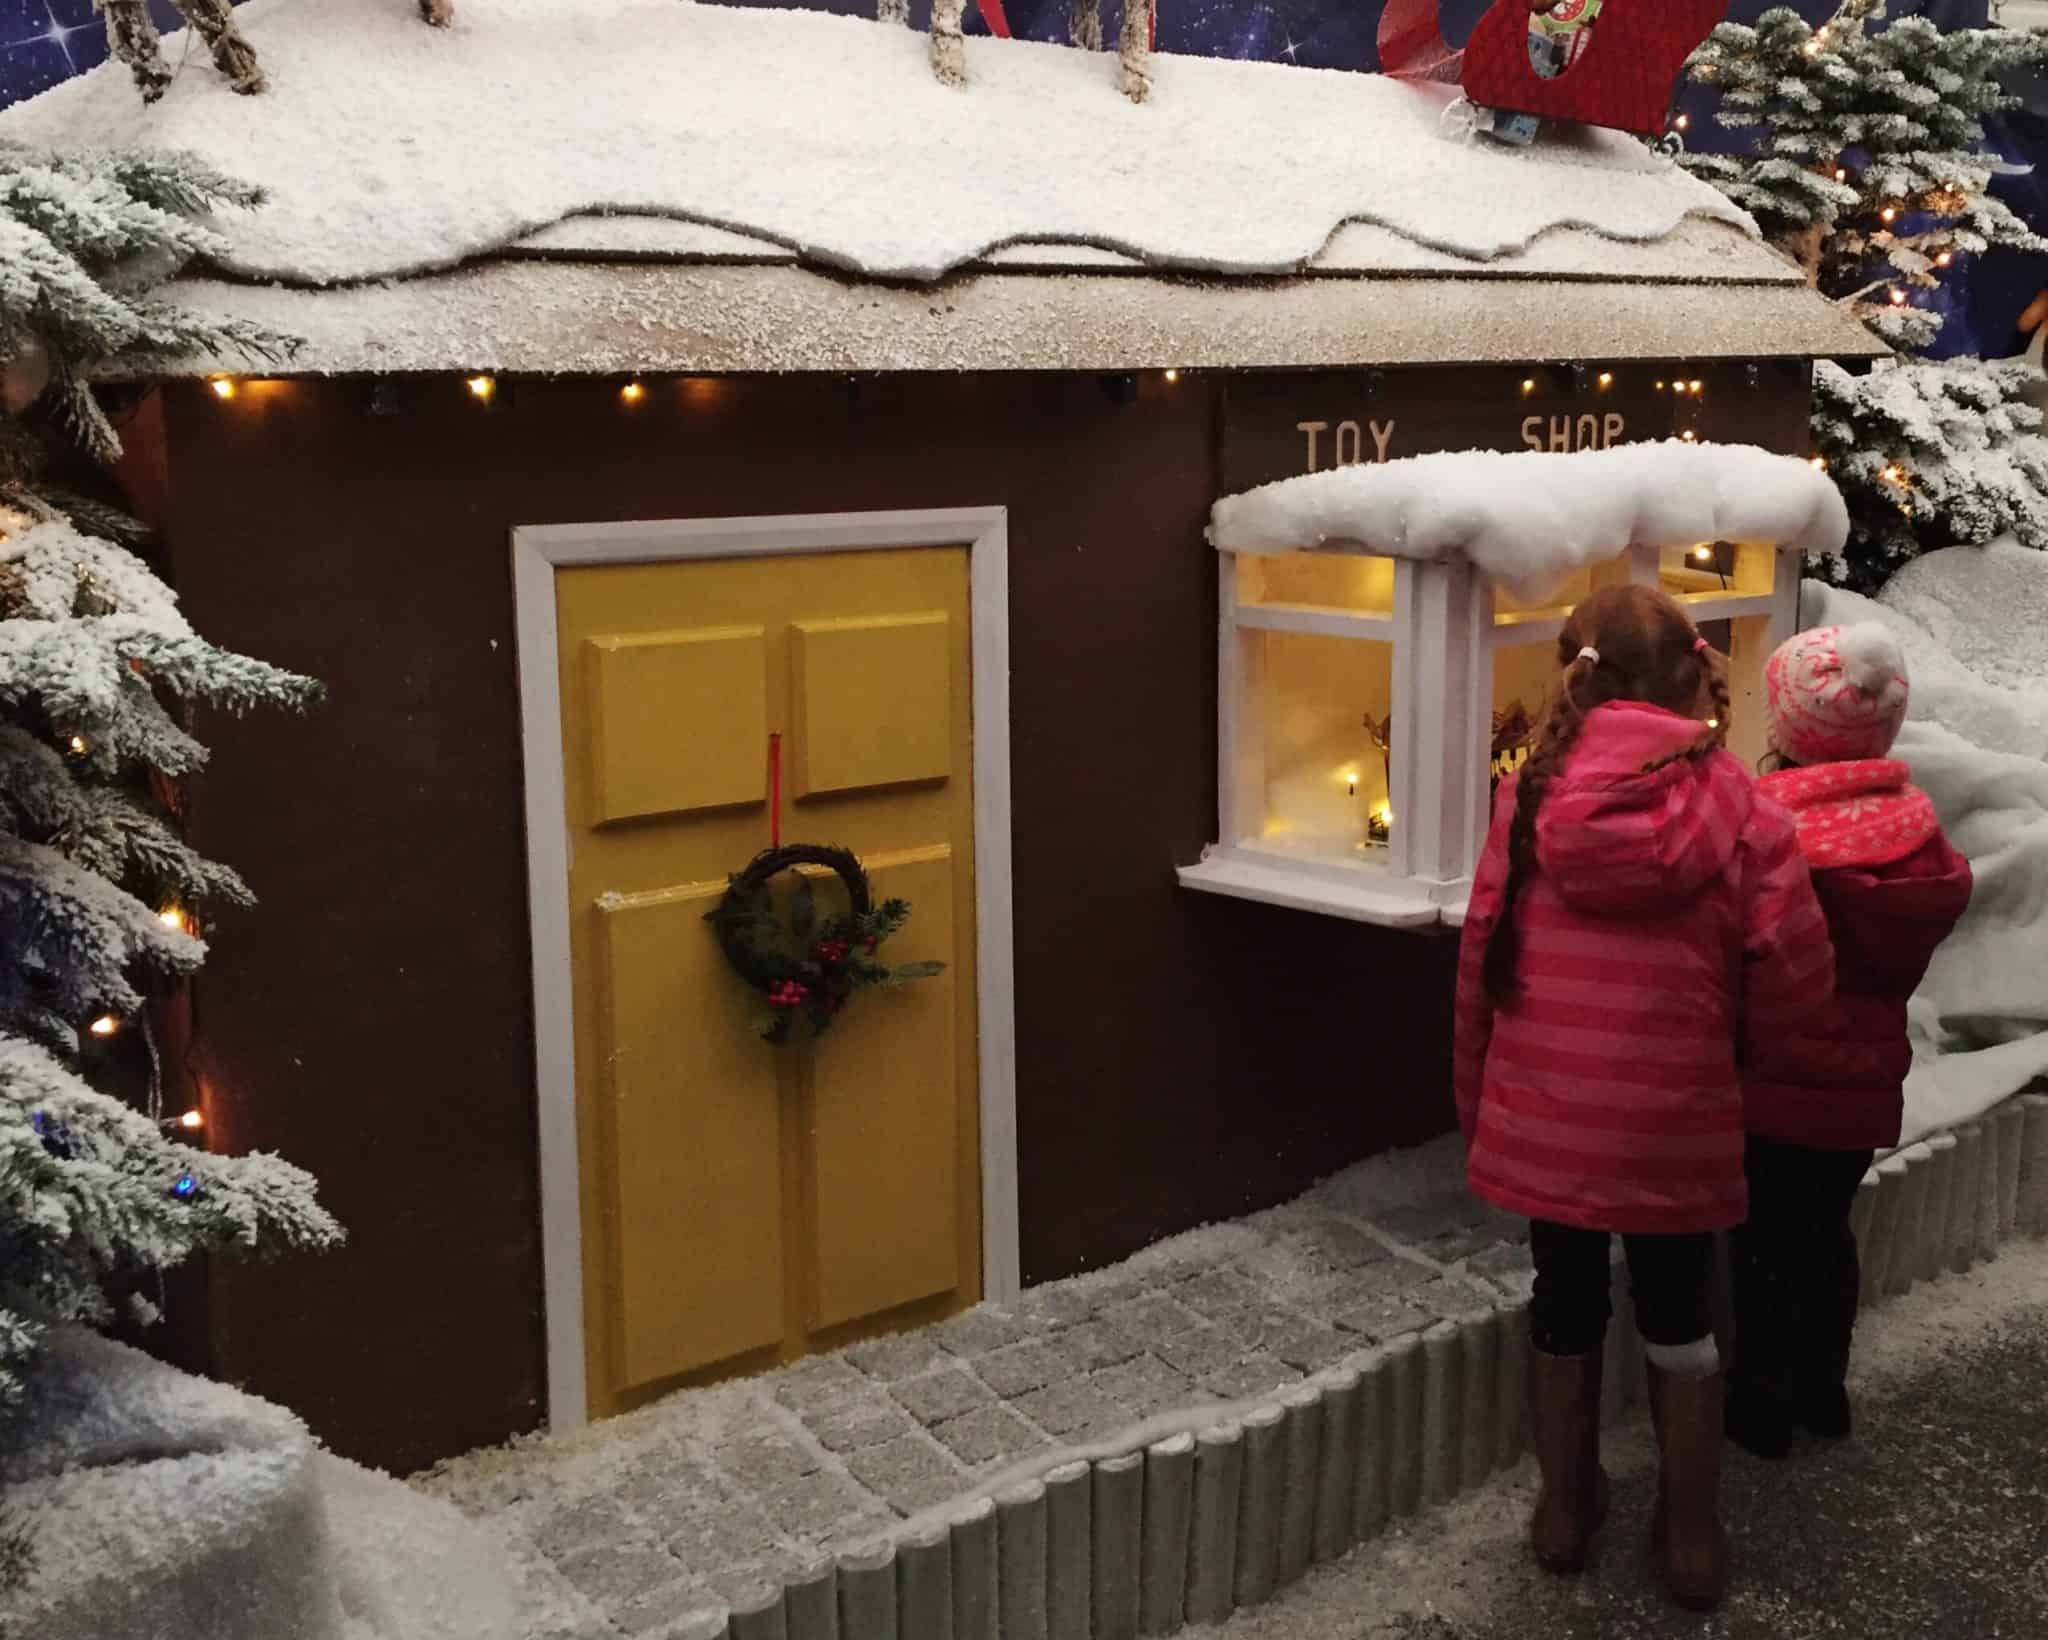 Peeping into the Toy Shop at the World's End Winter Wonderland